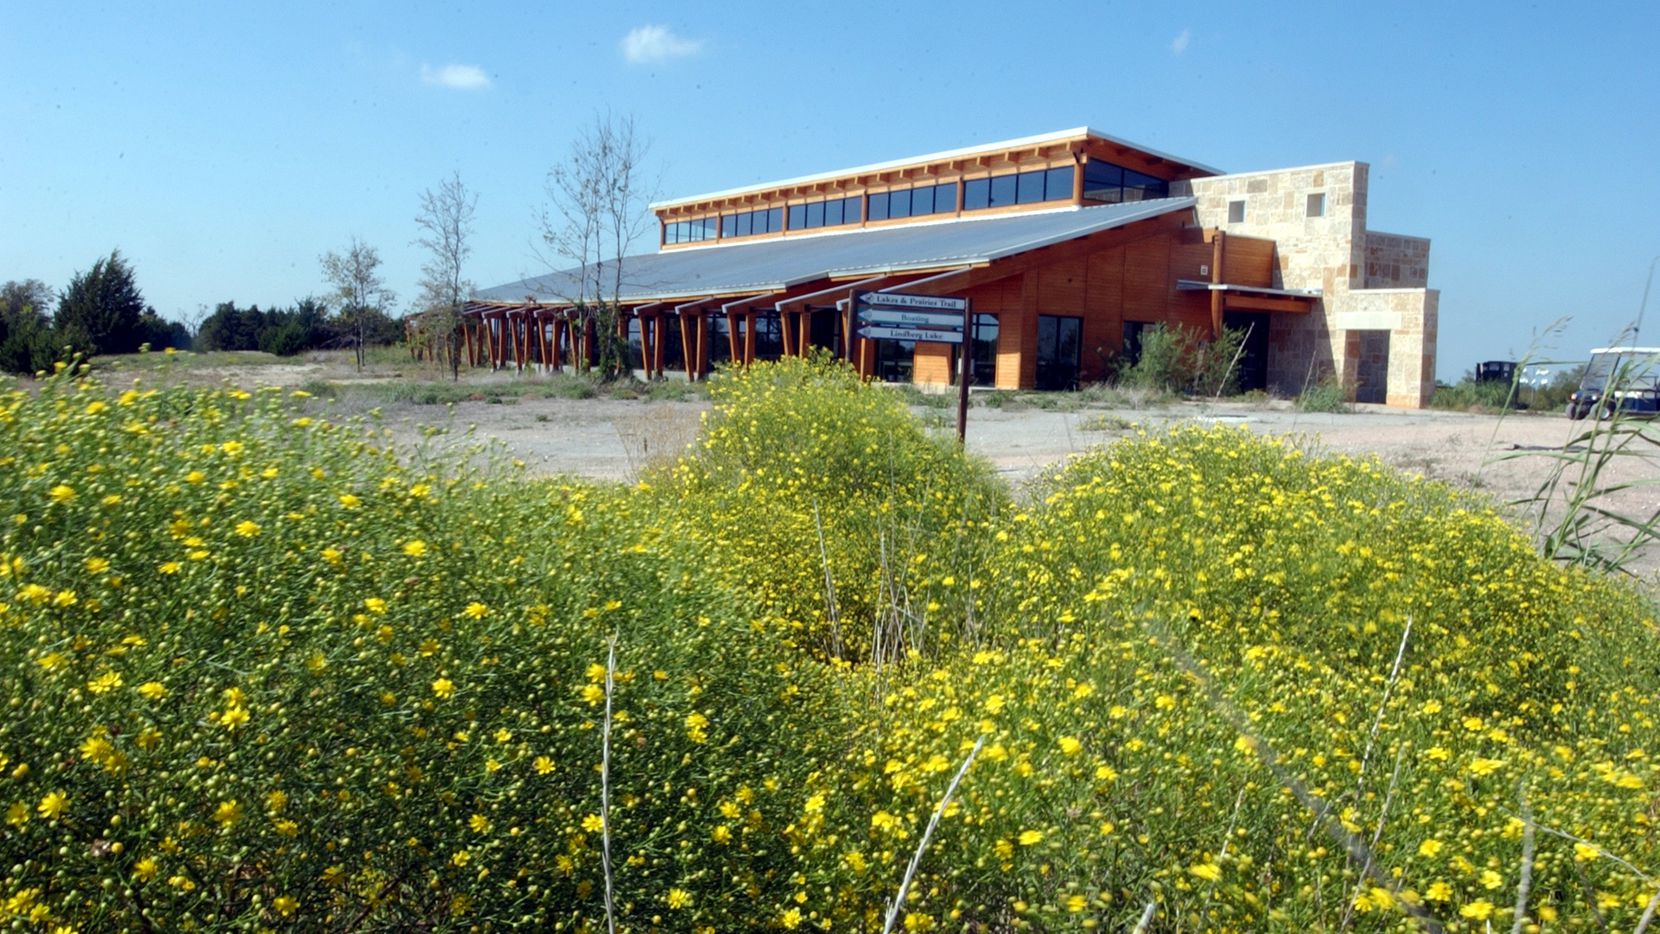 Broom weed surrounds the Education Building at the Collin County Adventure Camp, part of the Plano school district's science program.